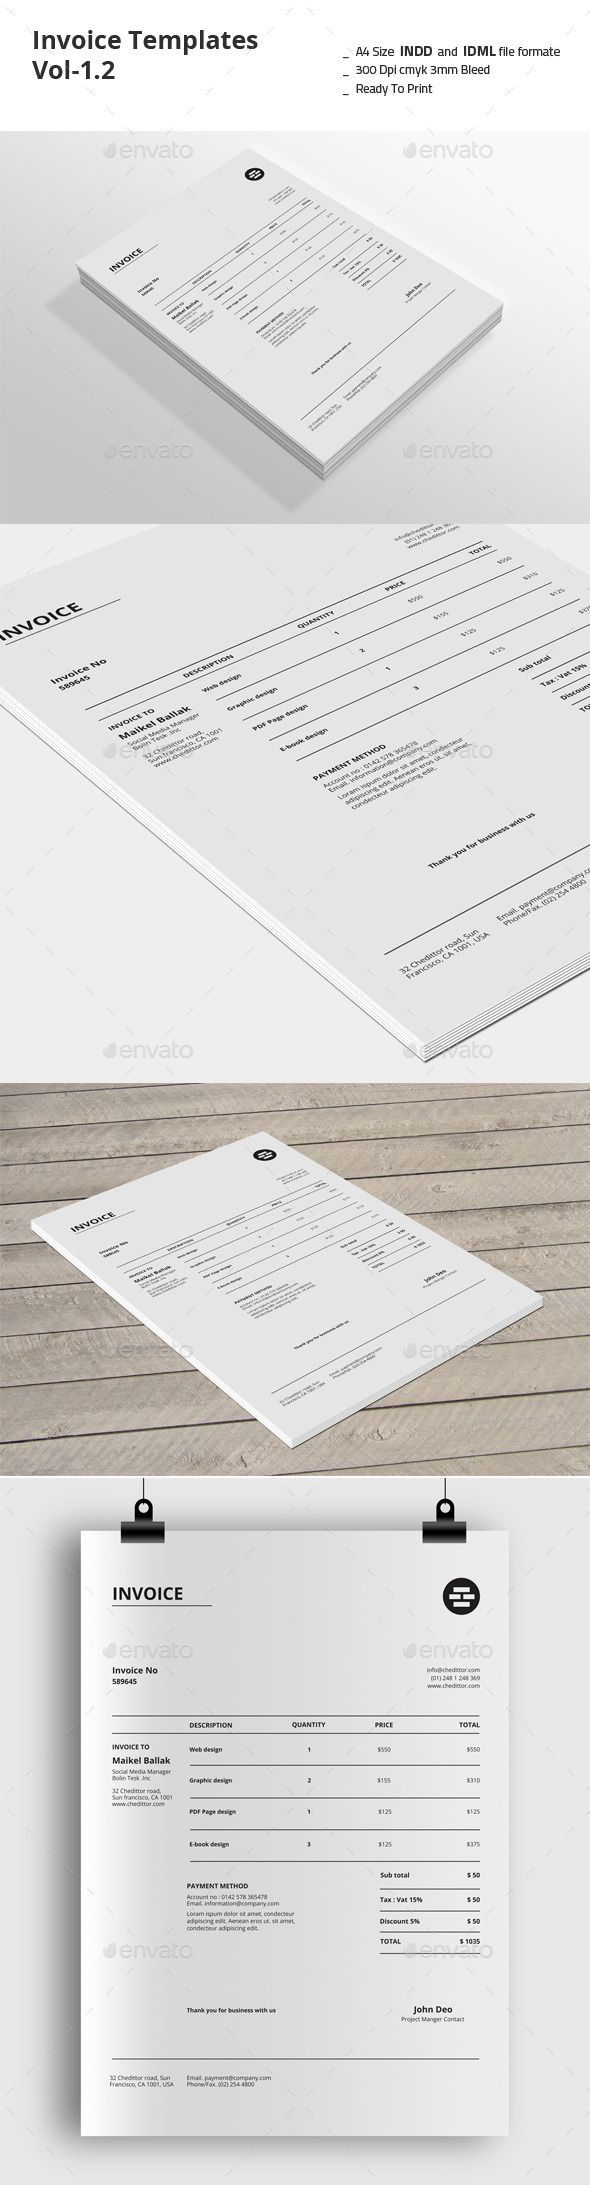 Invoice Templates Template | #invoice #invoicetemplate #invoicedesign | Download: http://graphicriver.net/item/invoice-templates-vol12/9212779?ref=ksioks